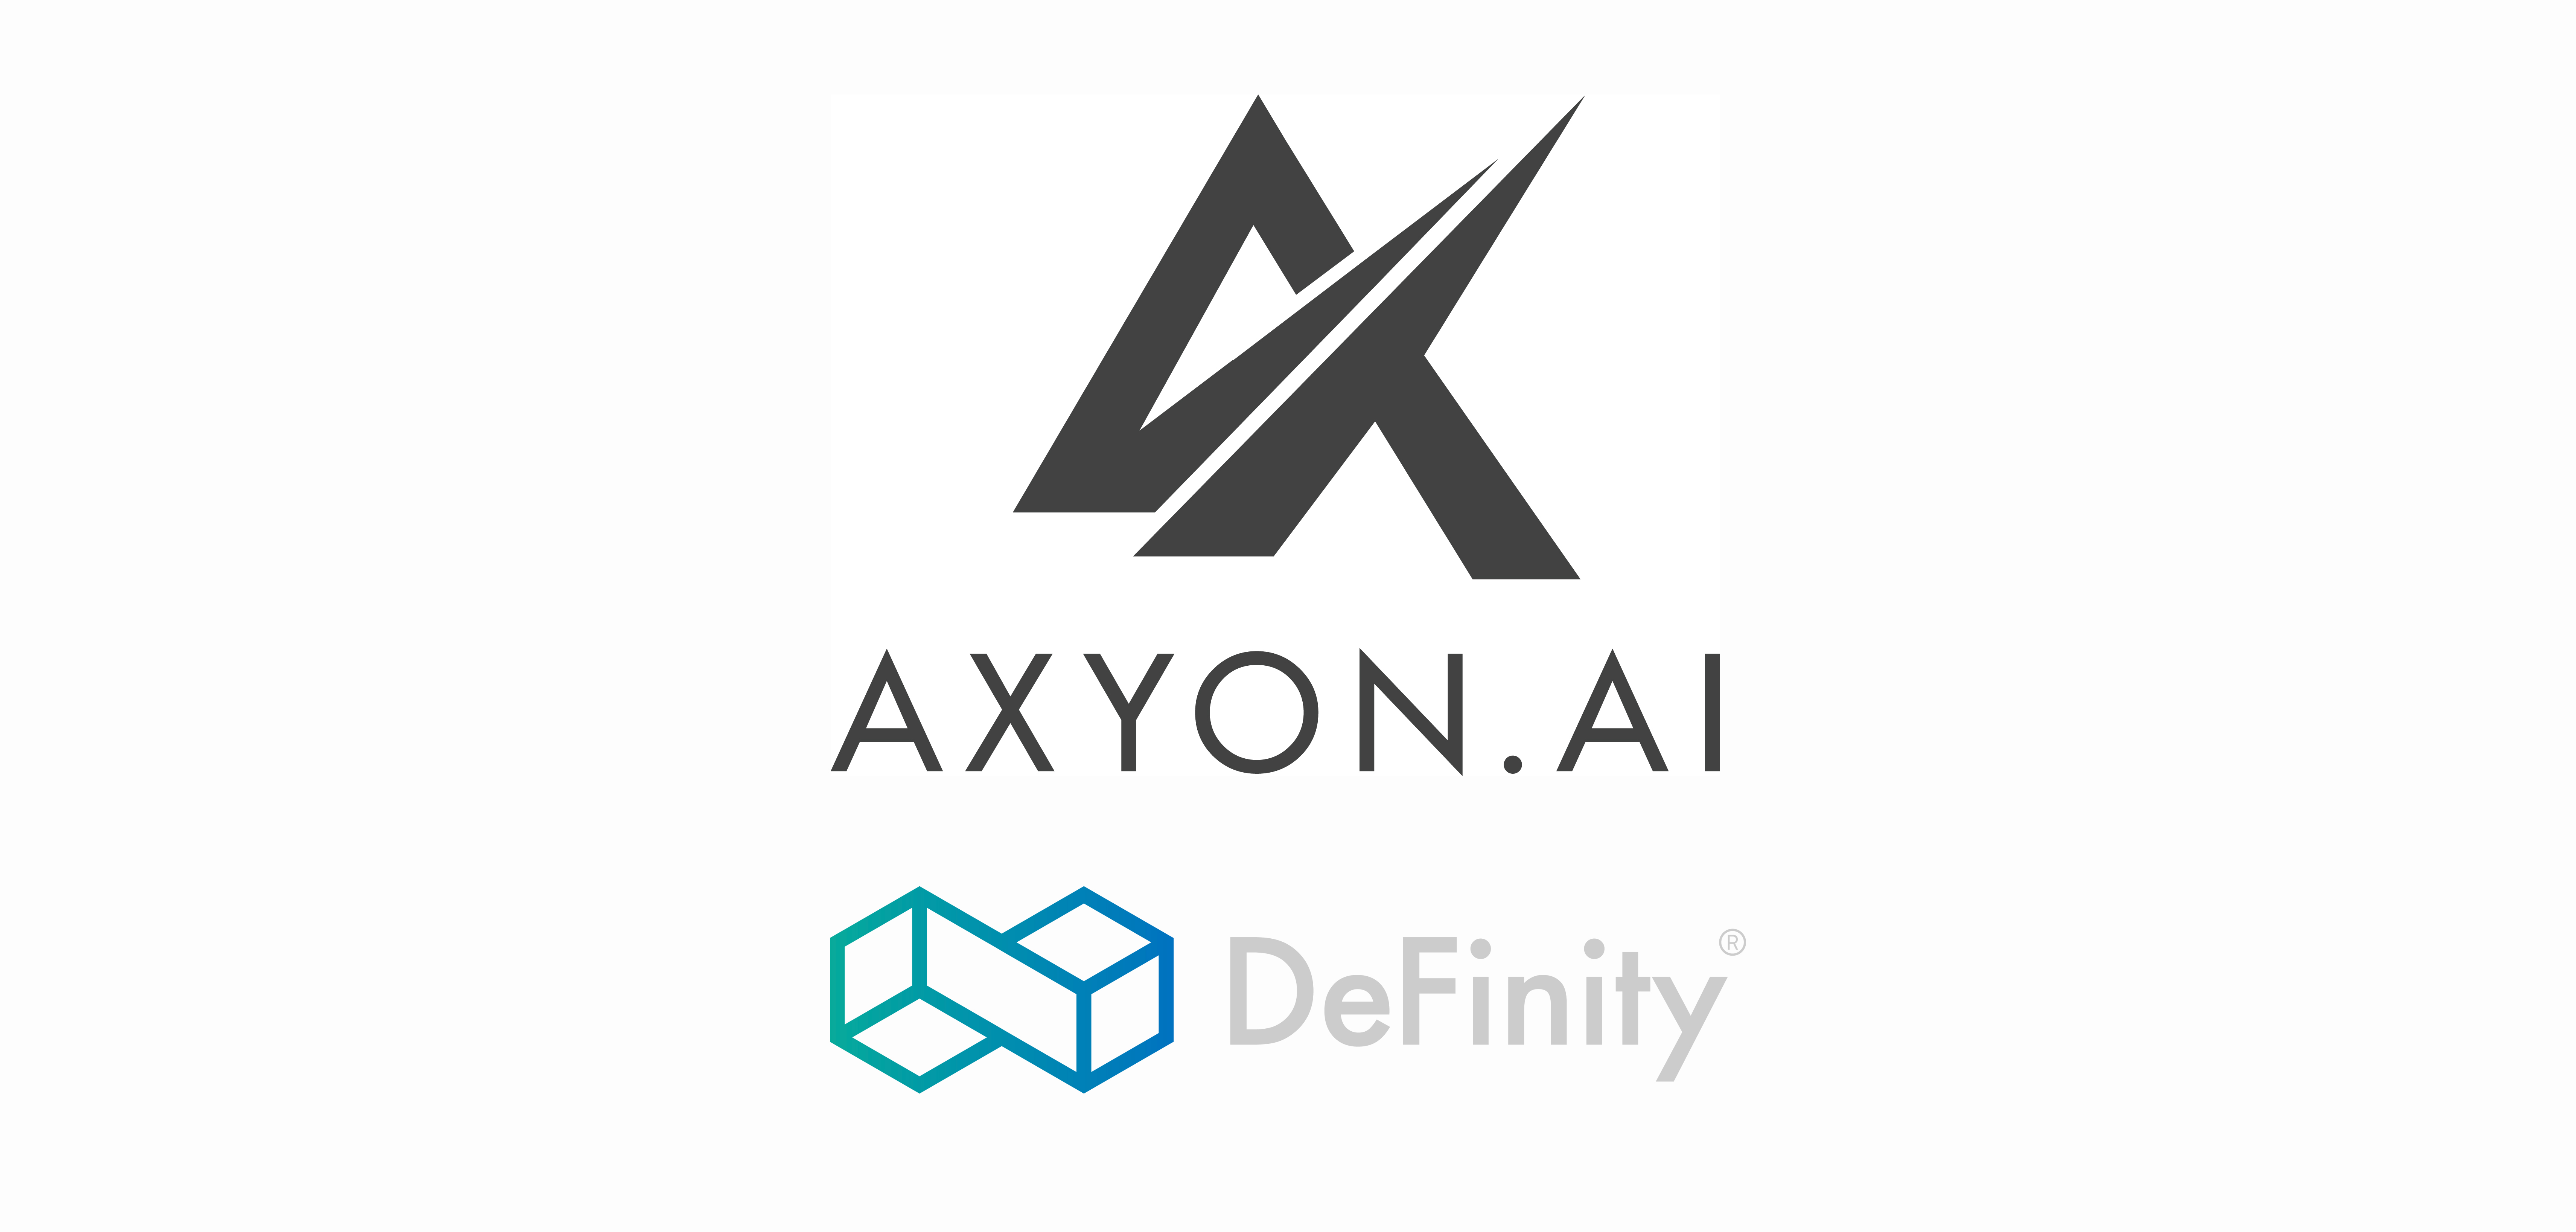 Axyon AI Delivers First Ever use of Market Anomaly Detection in Digital Asset Space